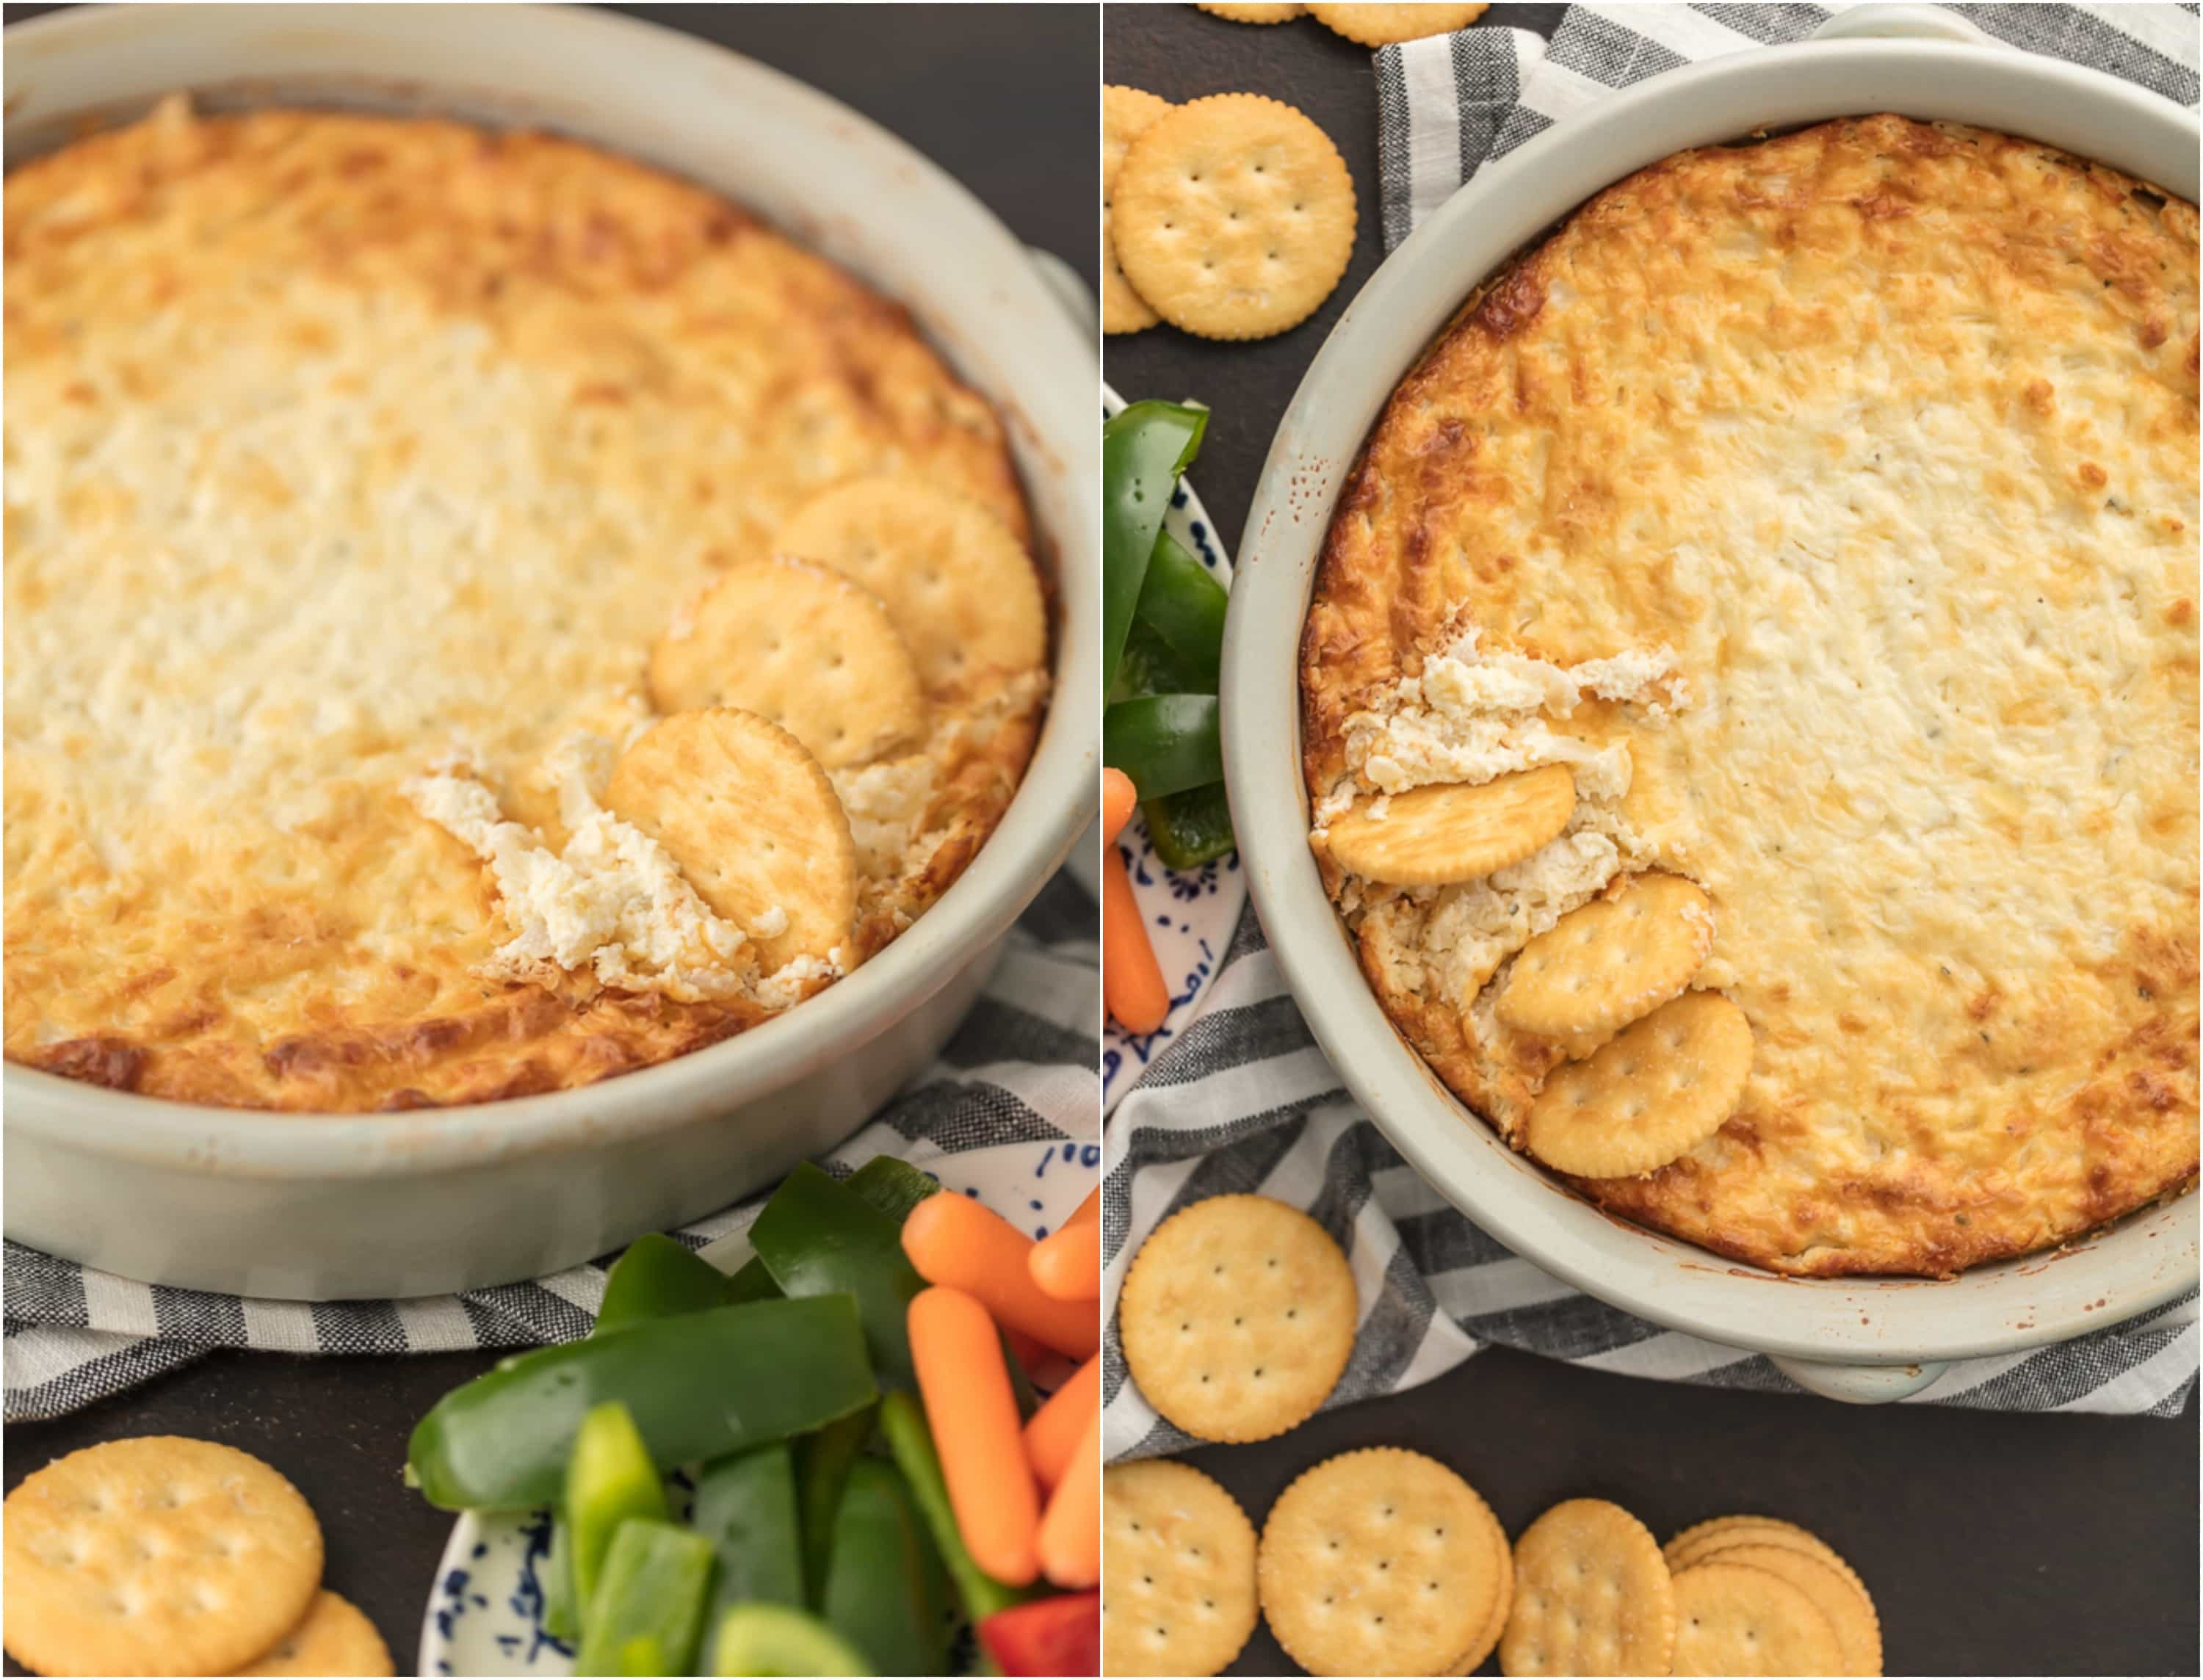 Hot Onion Souffle Dip with crackers and vegetables